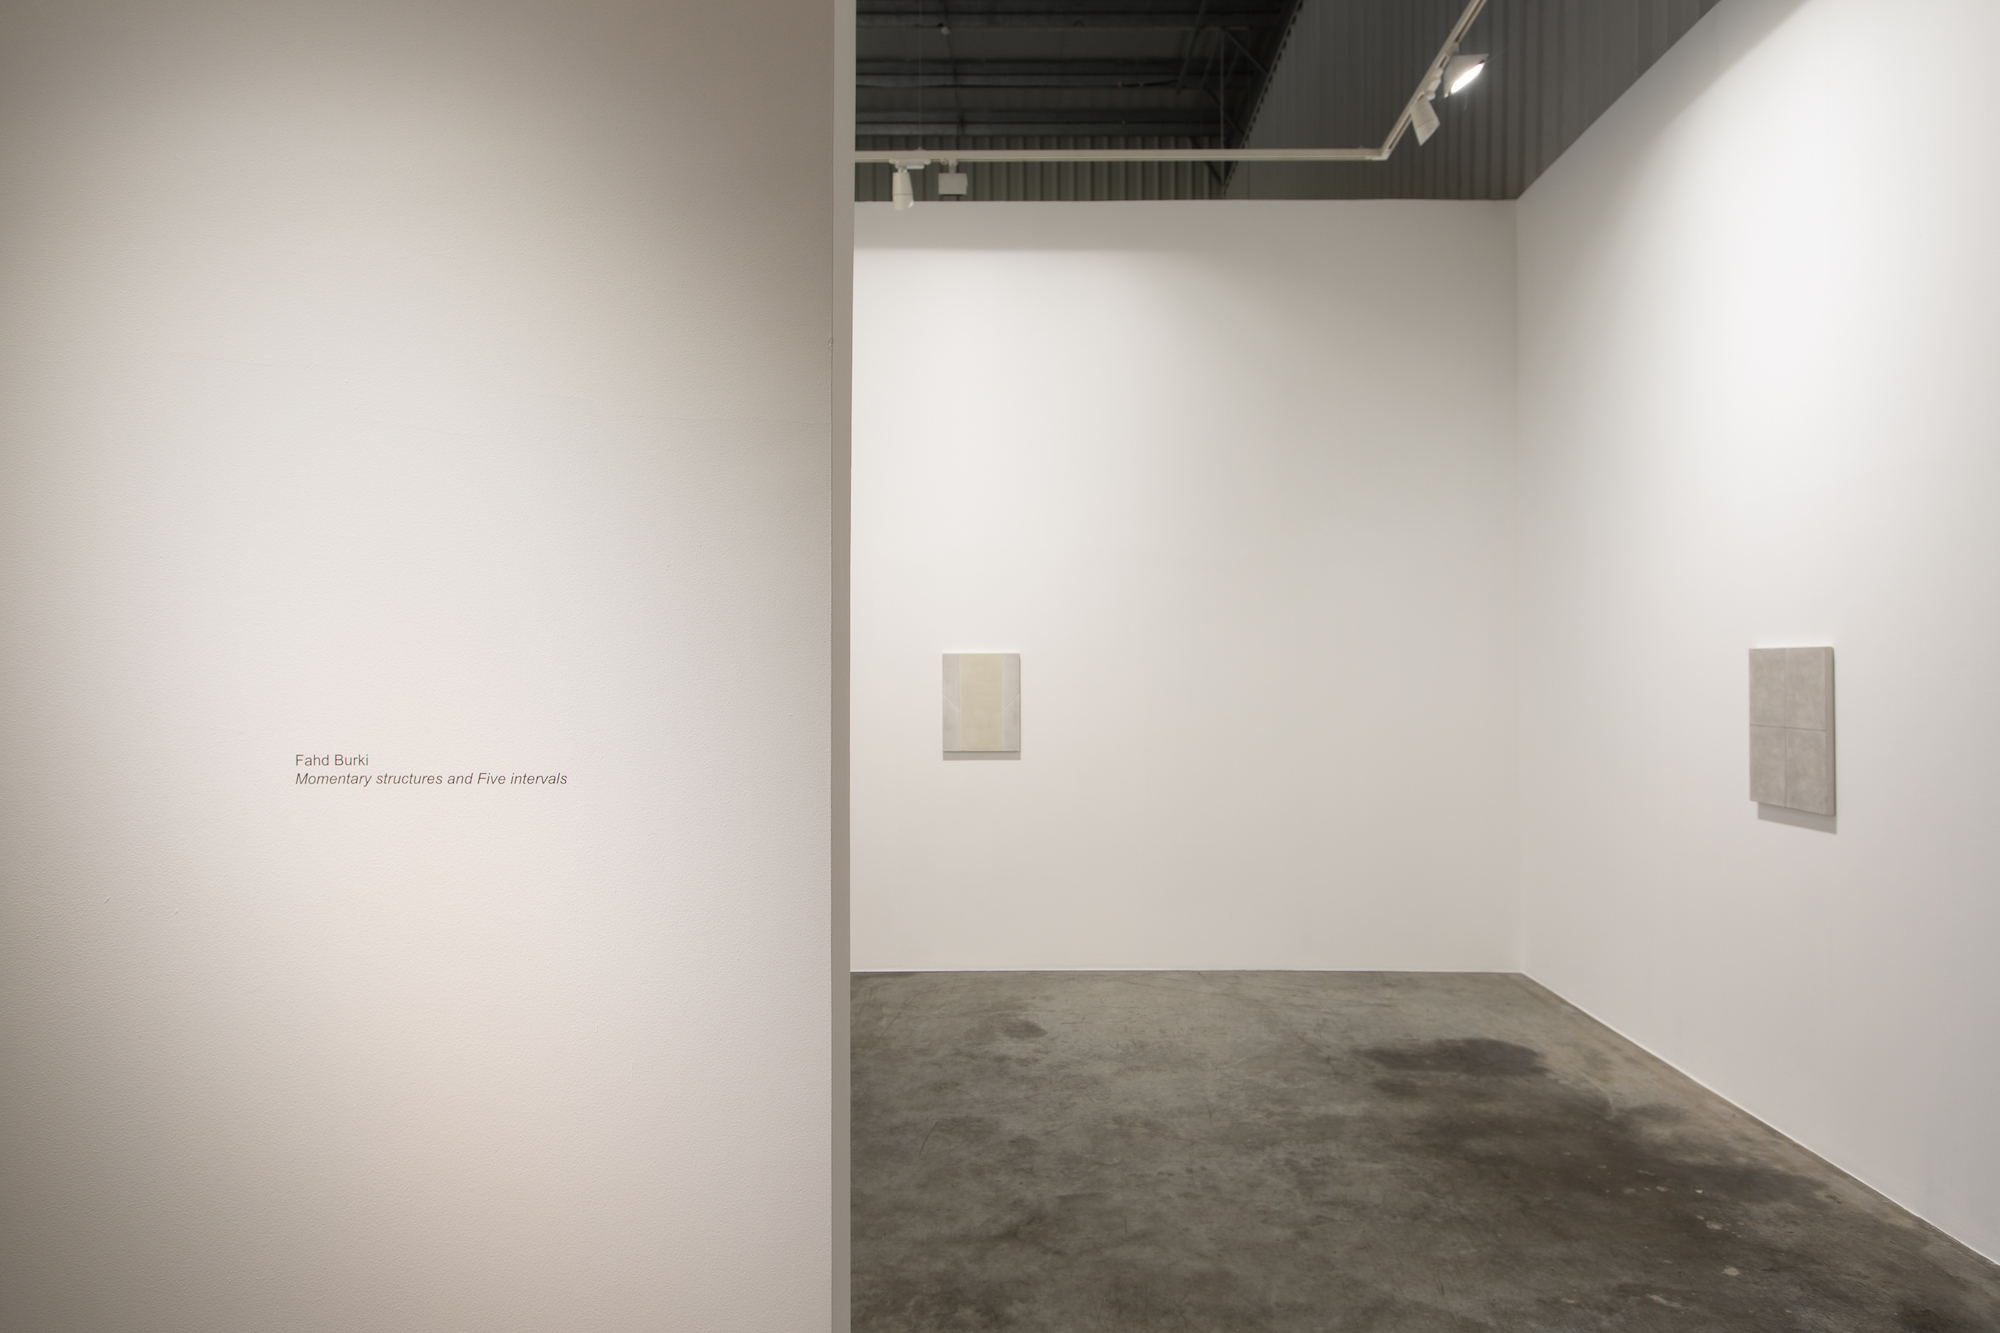 Installation view / Momentary structures and Five intervals